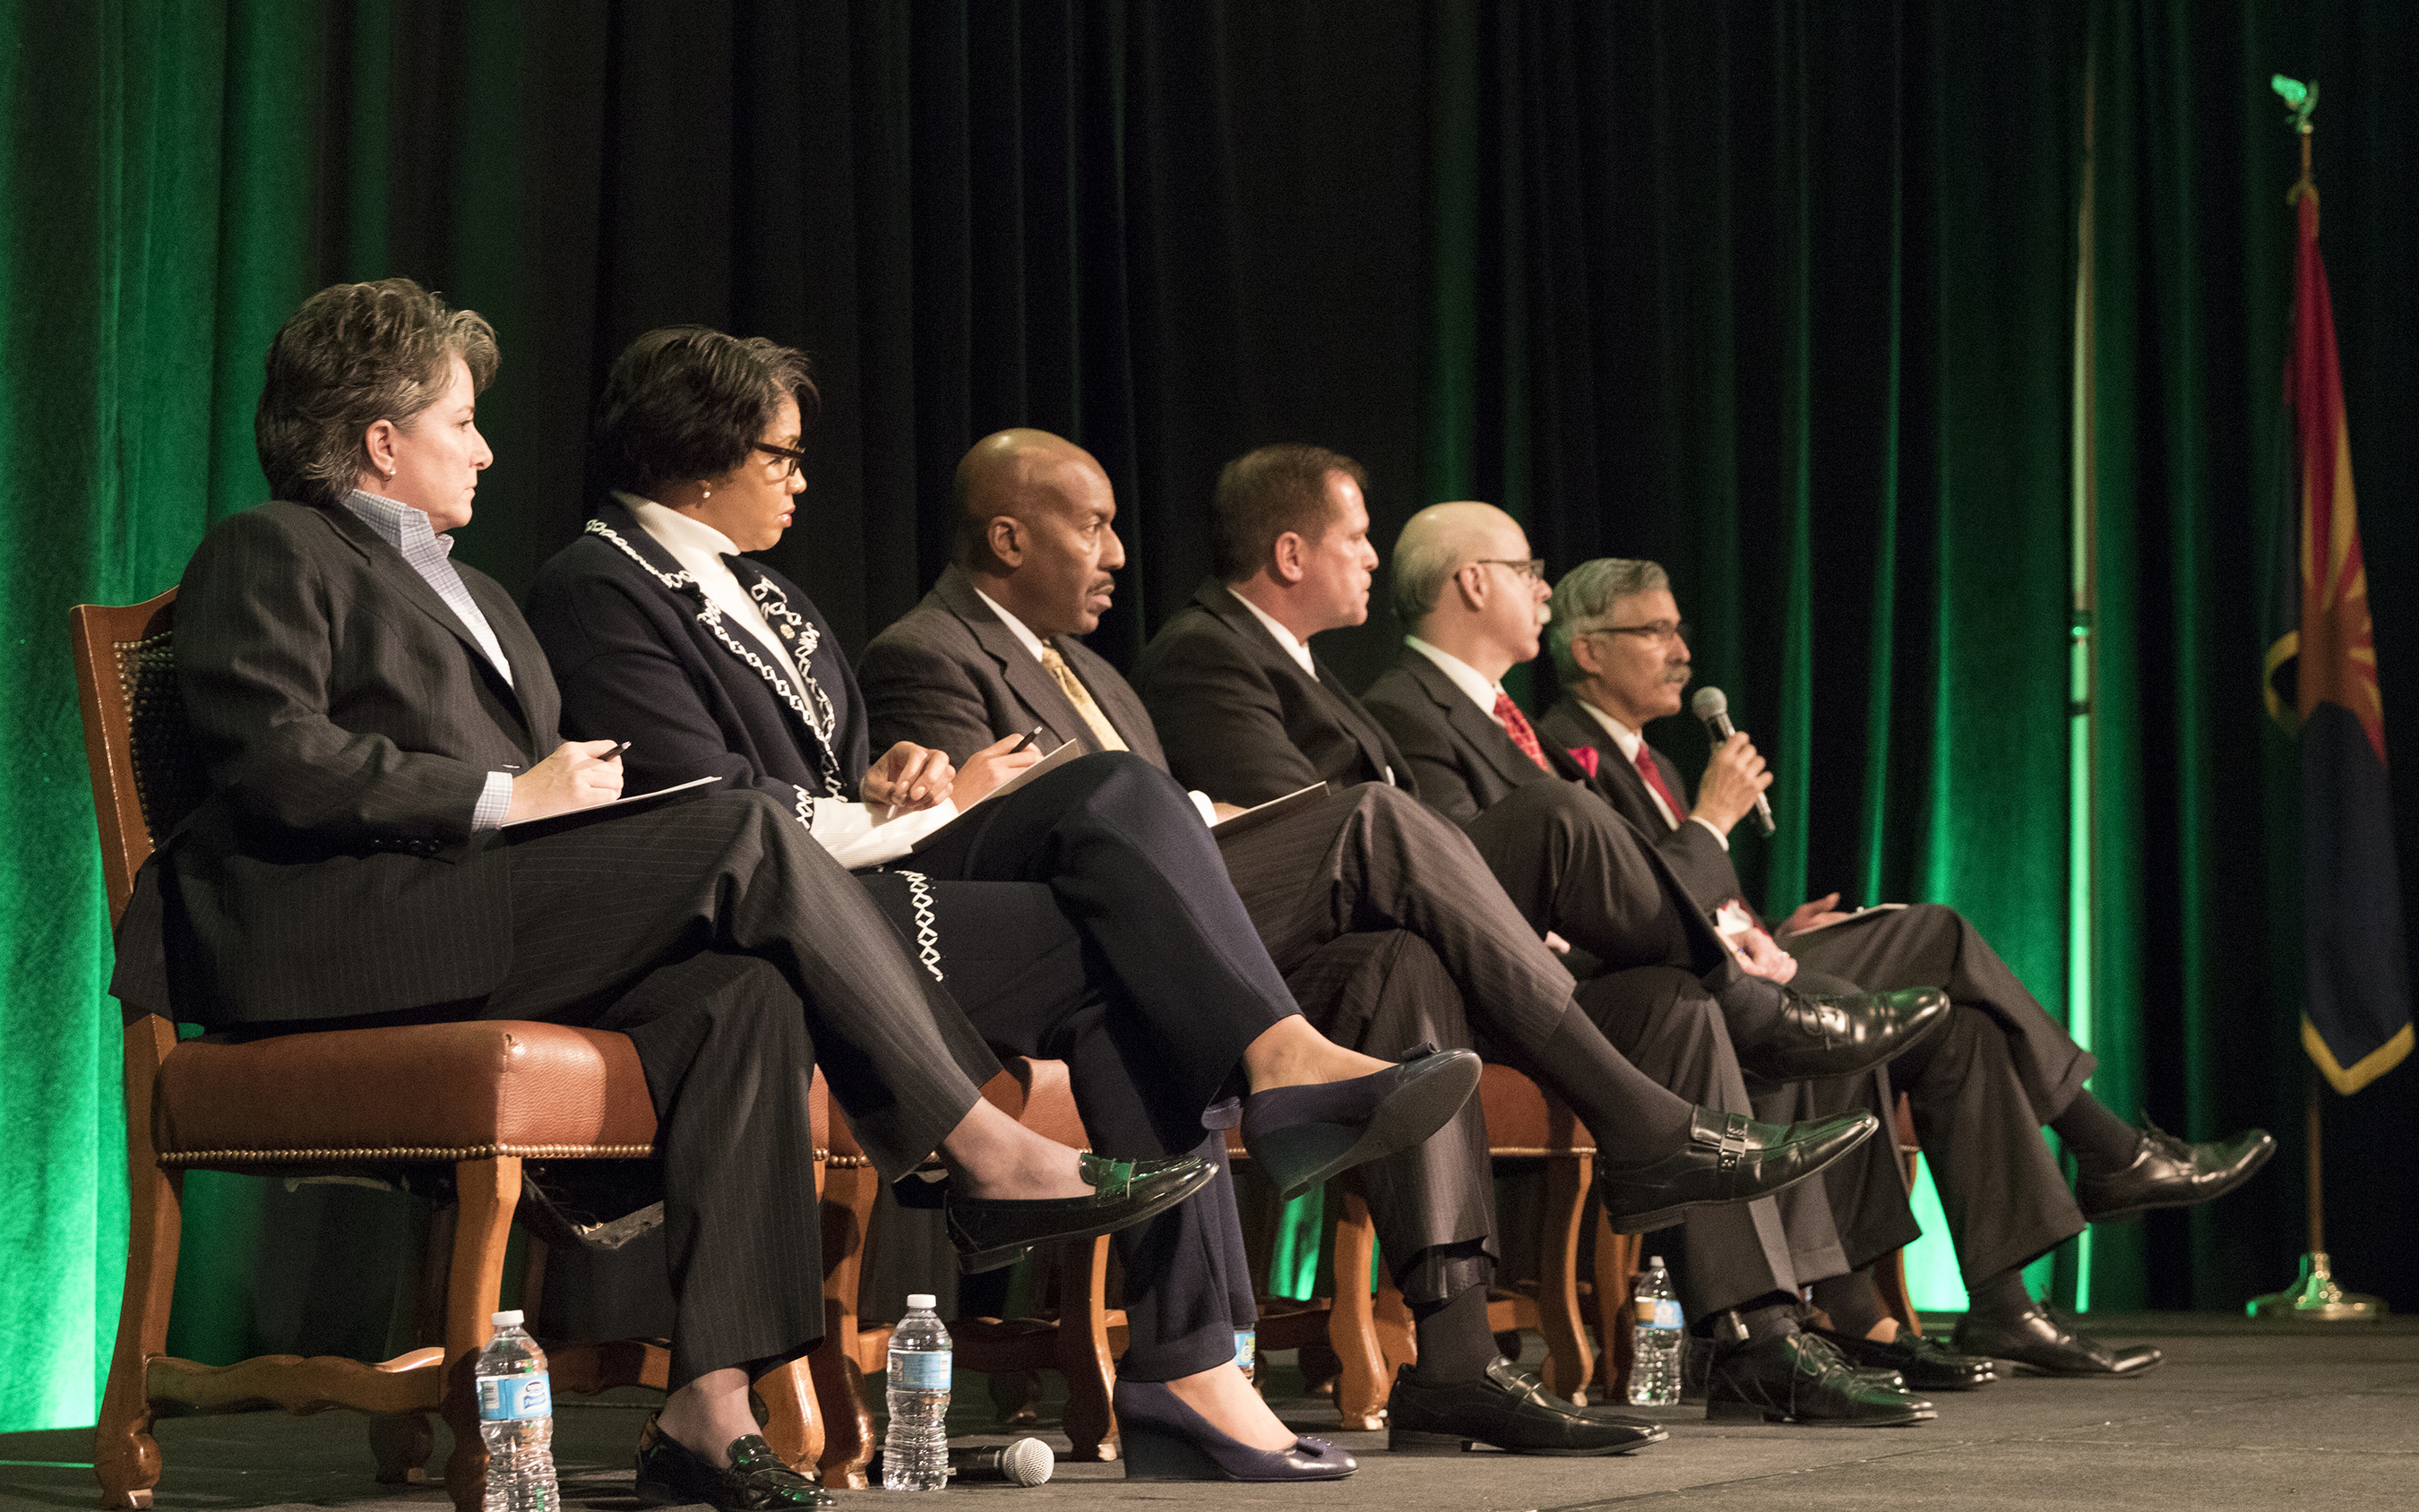 Six police chiefs from across the Valley discuss the relationship between the police and the communities they serve during the Bridge Forum in Scottsdale on Monday. The chiefs include (left to right) Tempe Chief Sylvia Moir, Phoenix Chief Jeri Williams, Peoria Chief Roy Minter, Mesa Interm Chief Michael Dvorak, Salt River Pima-Maricopa County Chief Karl Auerbach and Scottsdale Chief Alan Rodbell. (Photo by Josh Orcutt/Cronkite News)